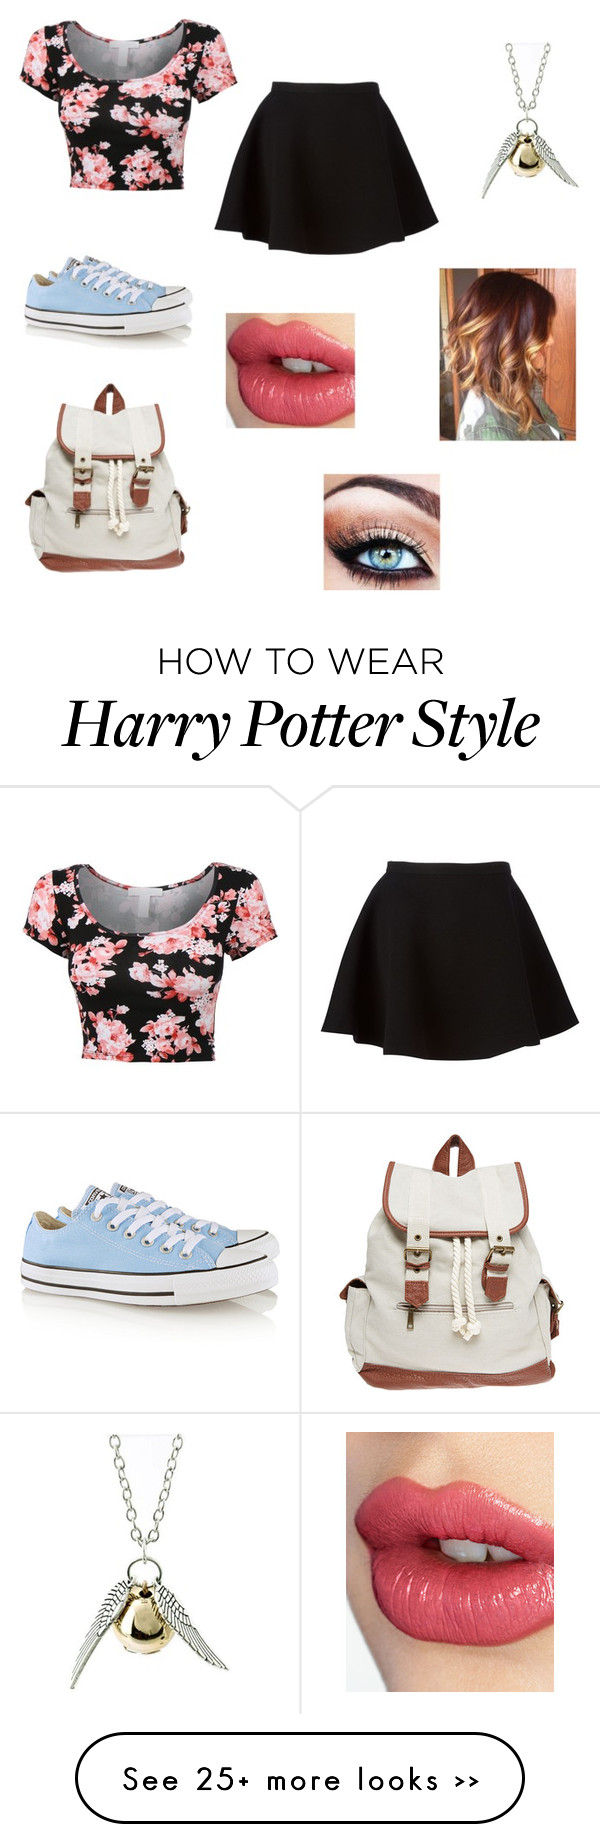 """kinda the same as my bts outfit"" by skylergray6885 on Polyvore featuring Neil Barrett, Converse, Wet Seal, Quiksilver and Charlotte Tilbury"